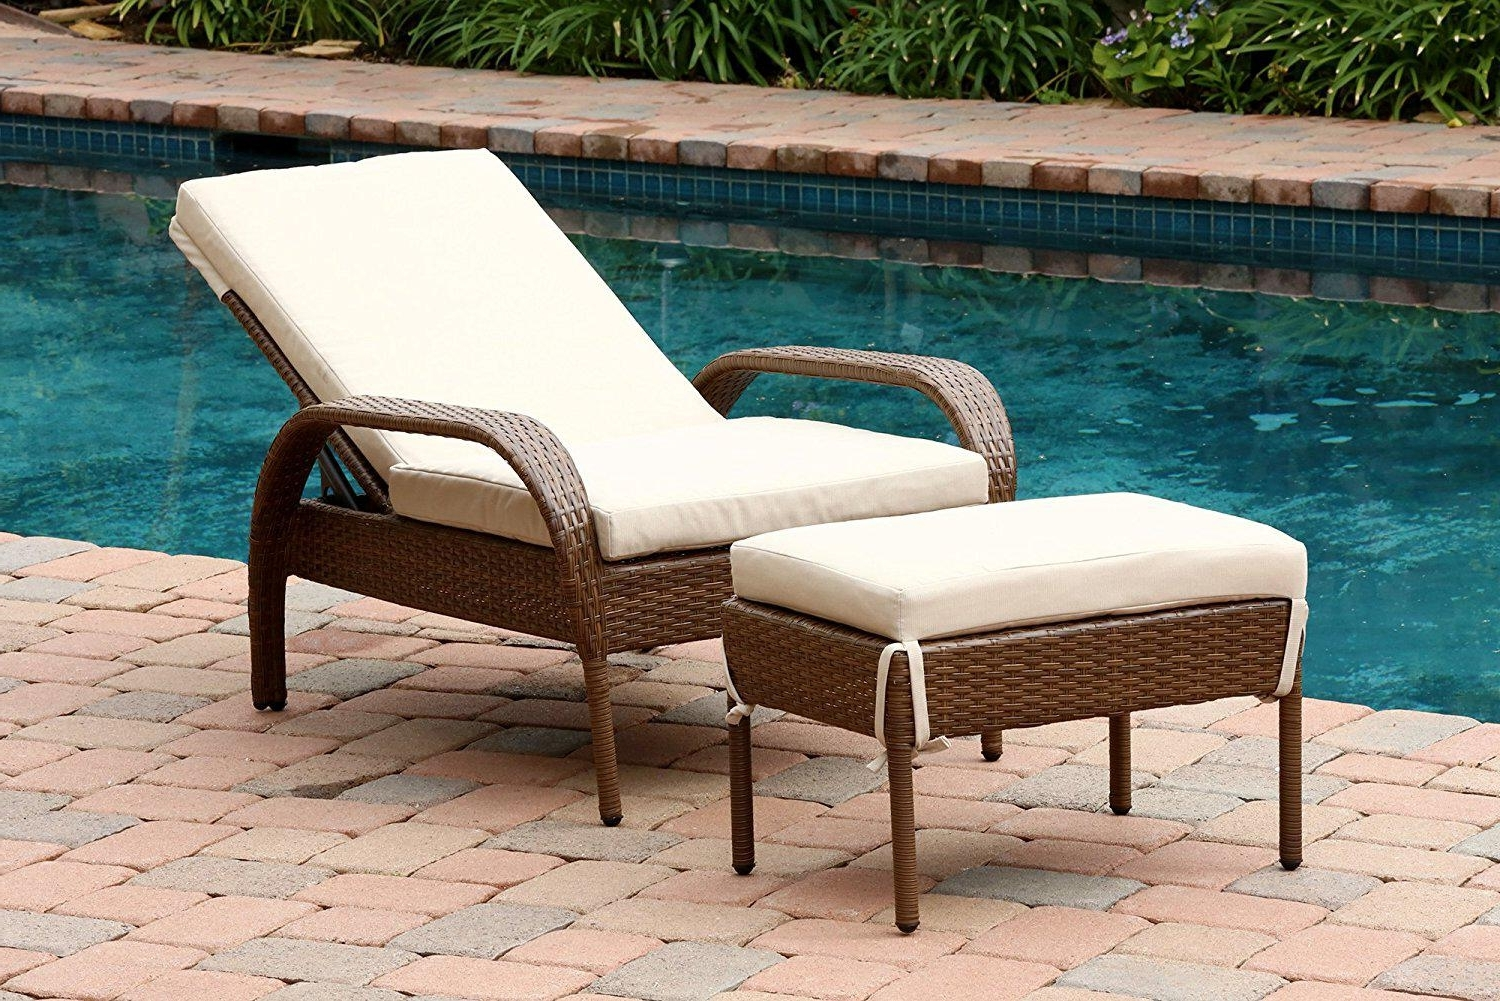 2018 Outdoor : Patio Furniture Lounge Lounge Chairs For Bedroom Plastic Regarding Web Chaise Lounge Lawn Chairs (View 11 of 15)